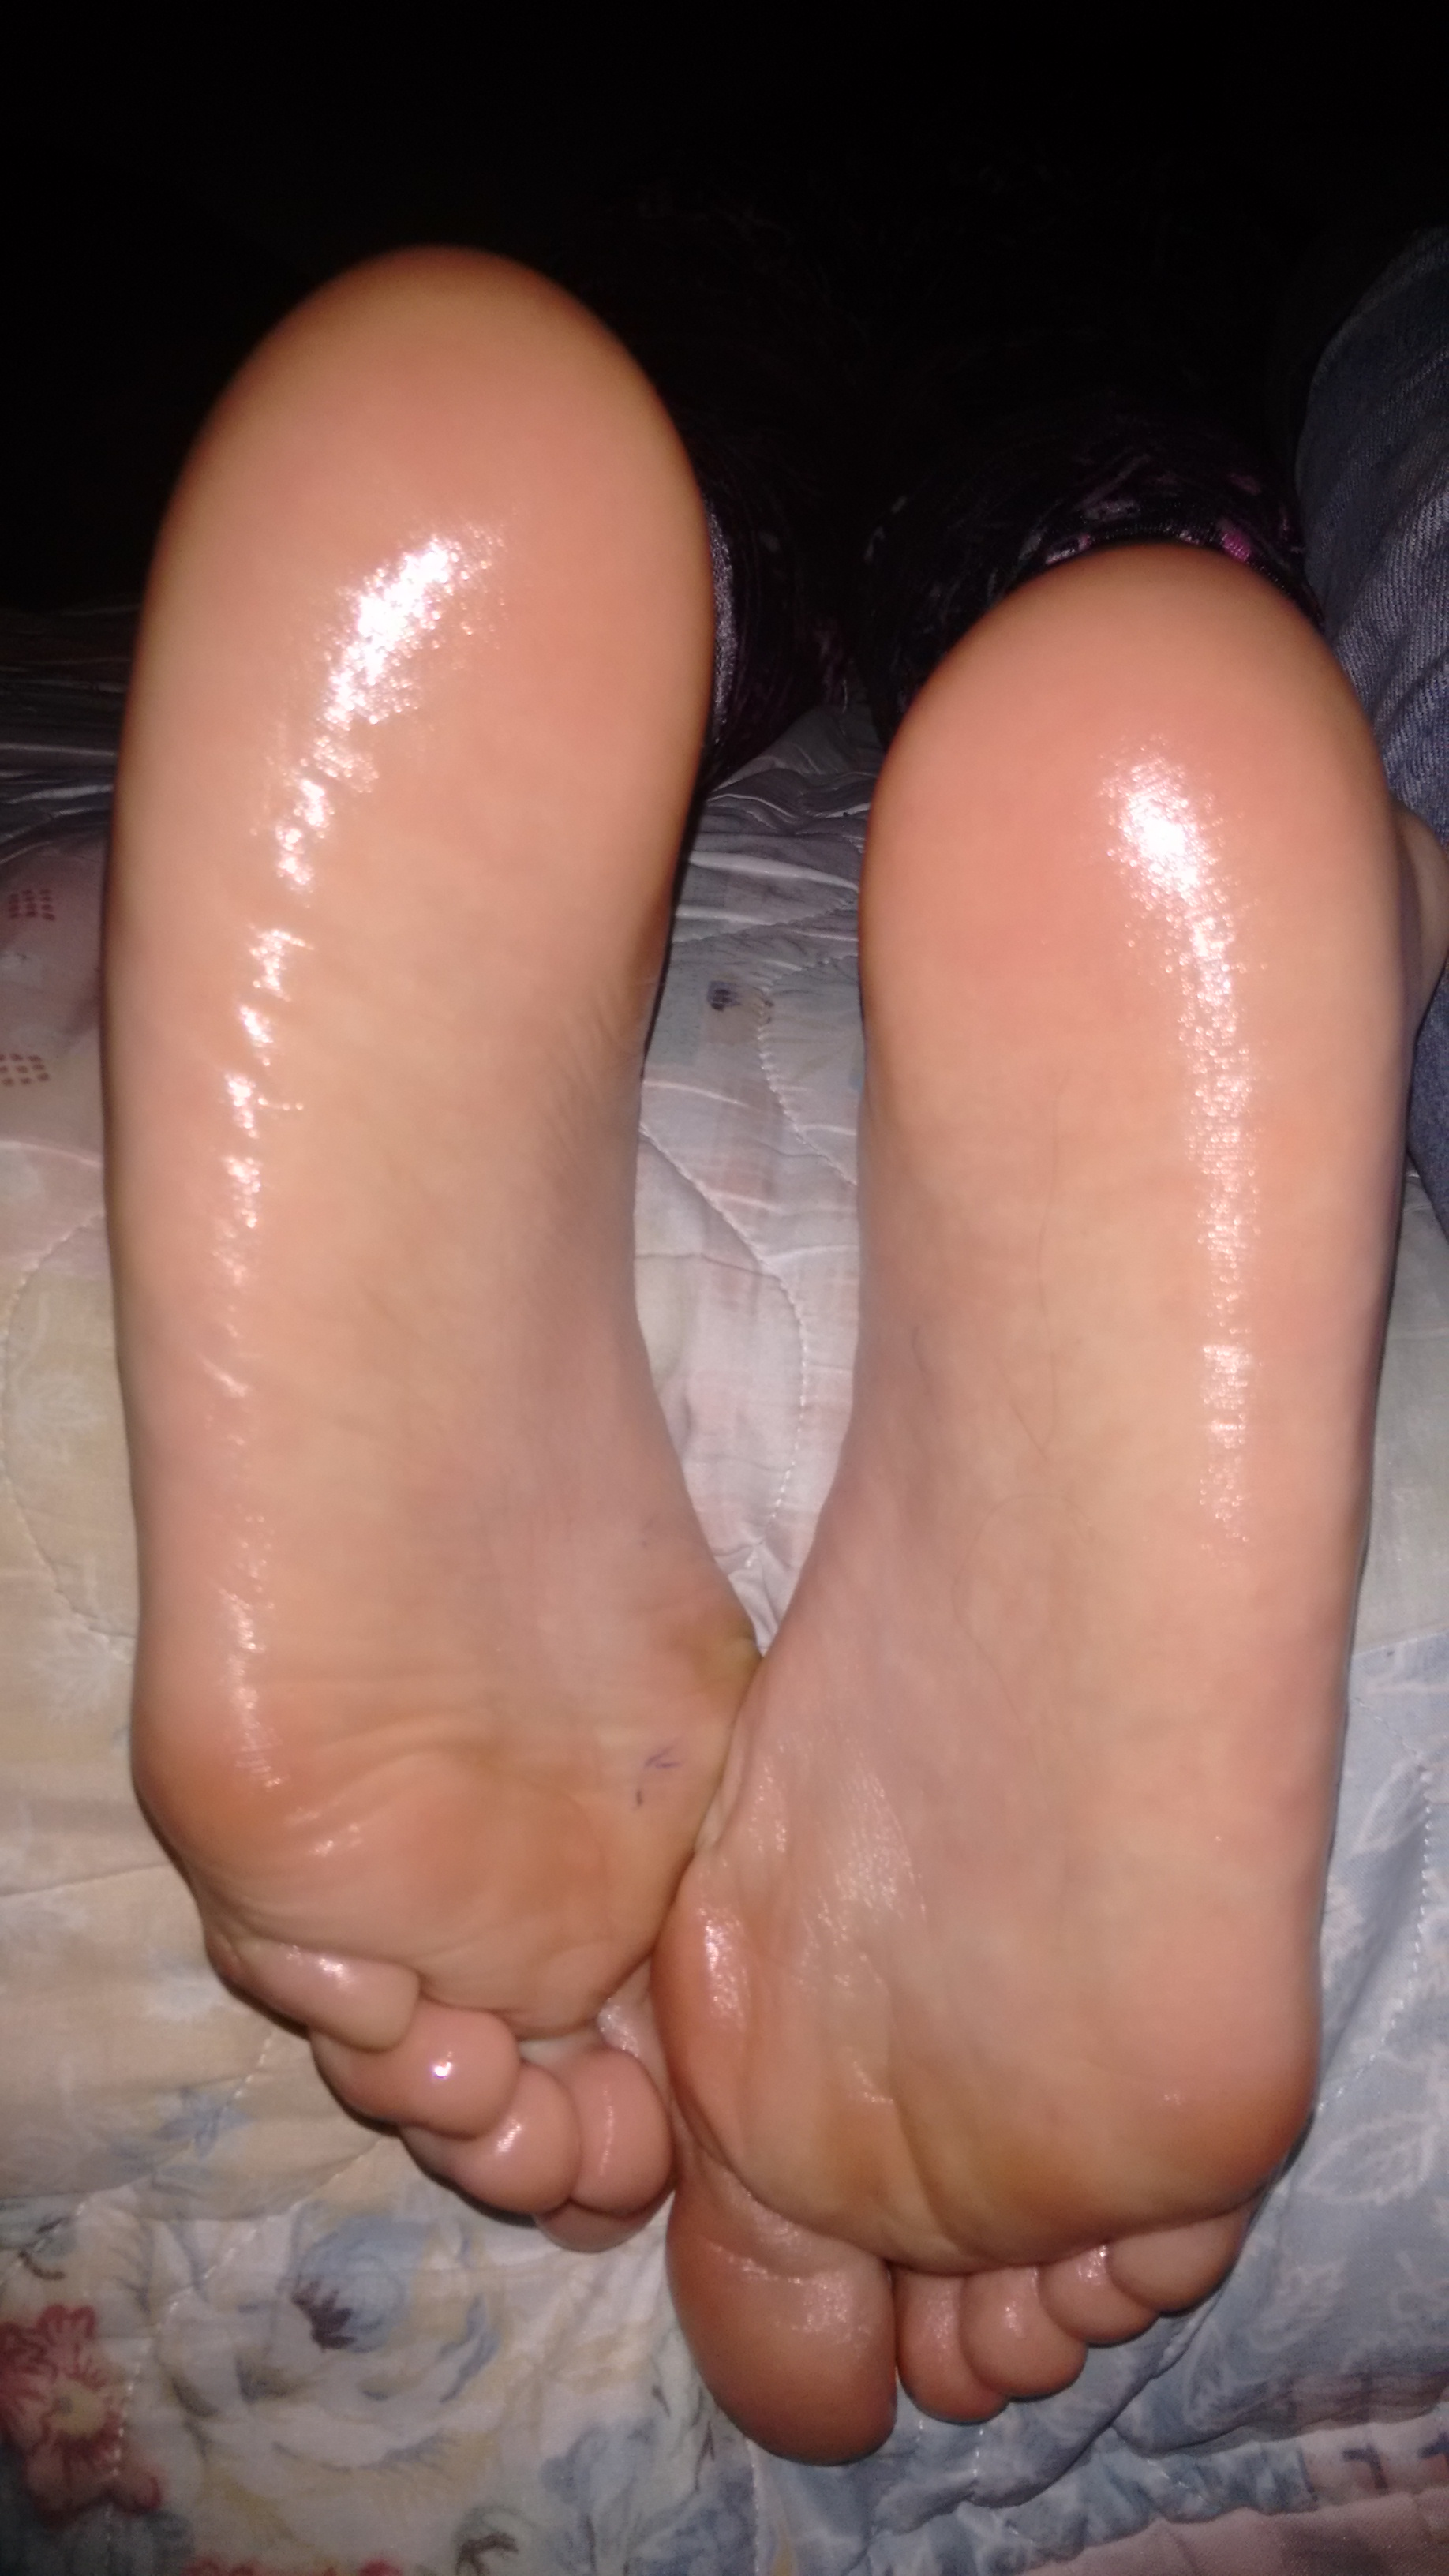 File:Girl´s soles with oil.jpg